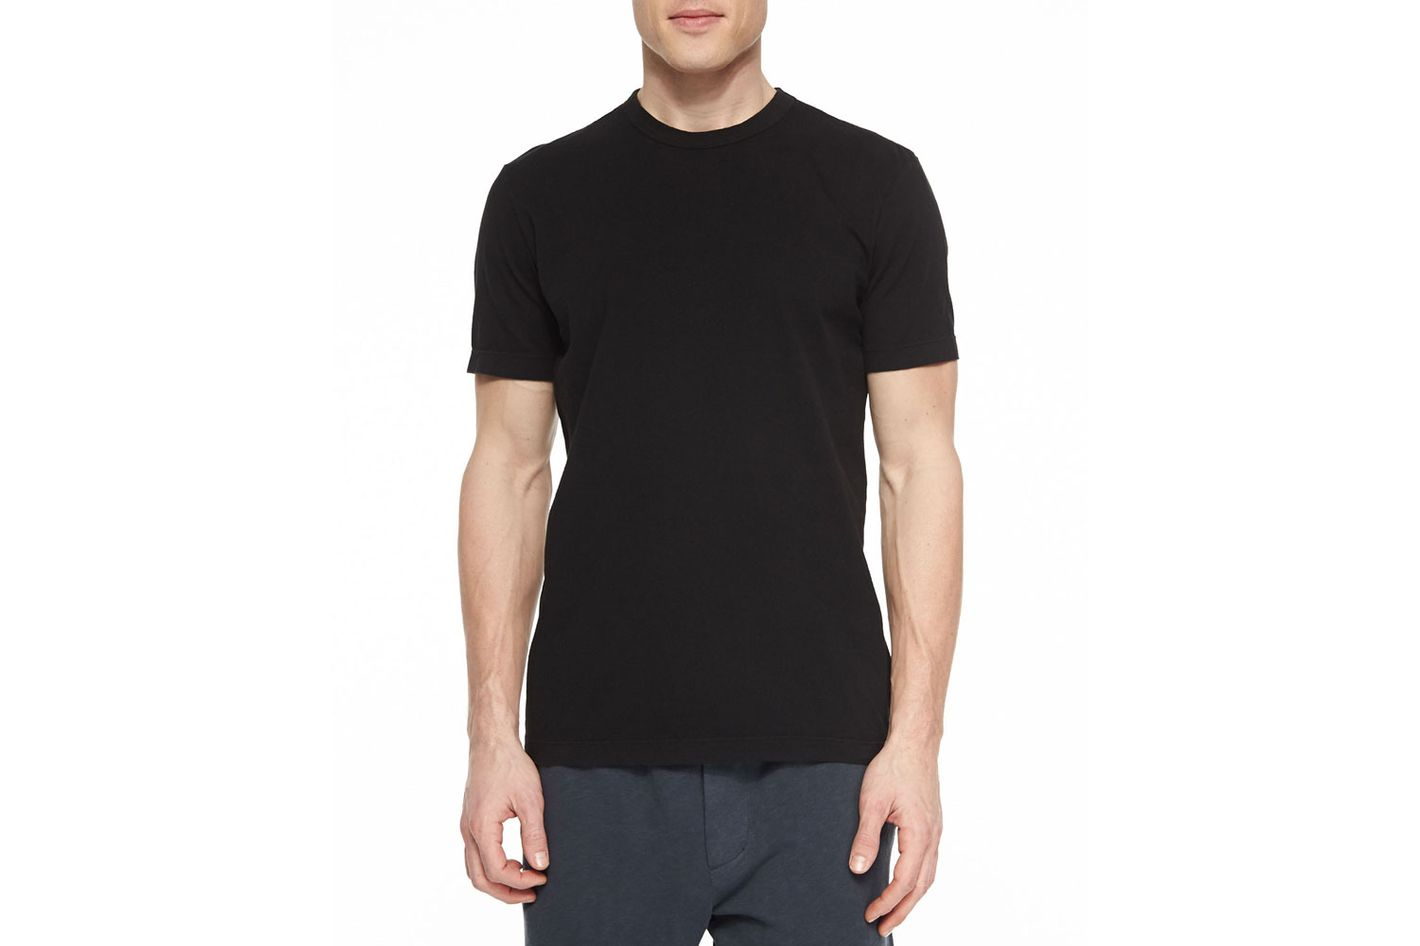 87de4dfdd8ea The Best Black T-Shirt for Men According to Nick Wooster